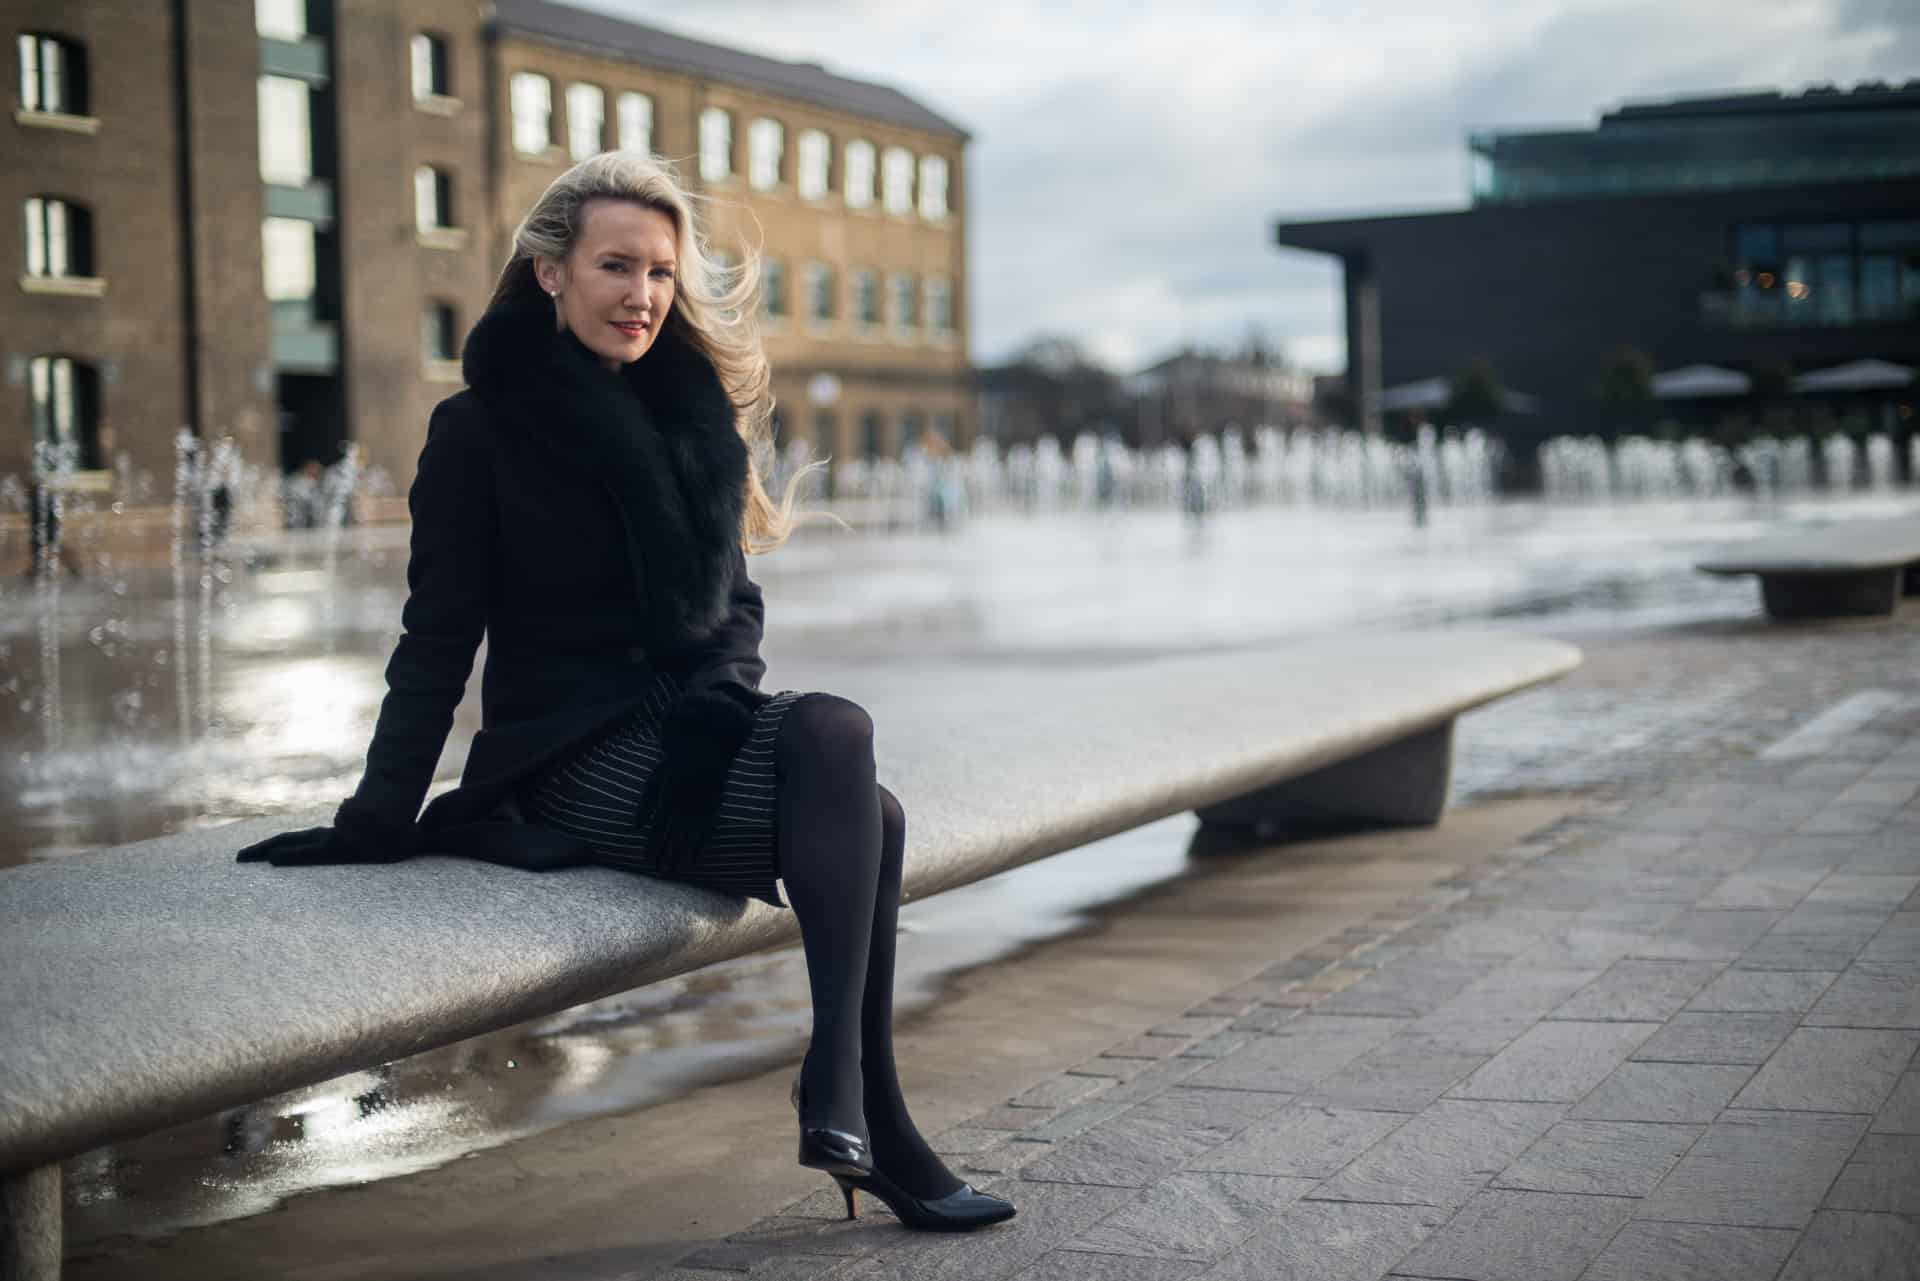 Corporate portrait in King's Cross London - Portrait Photography by Chris King of Open Eye Media